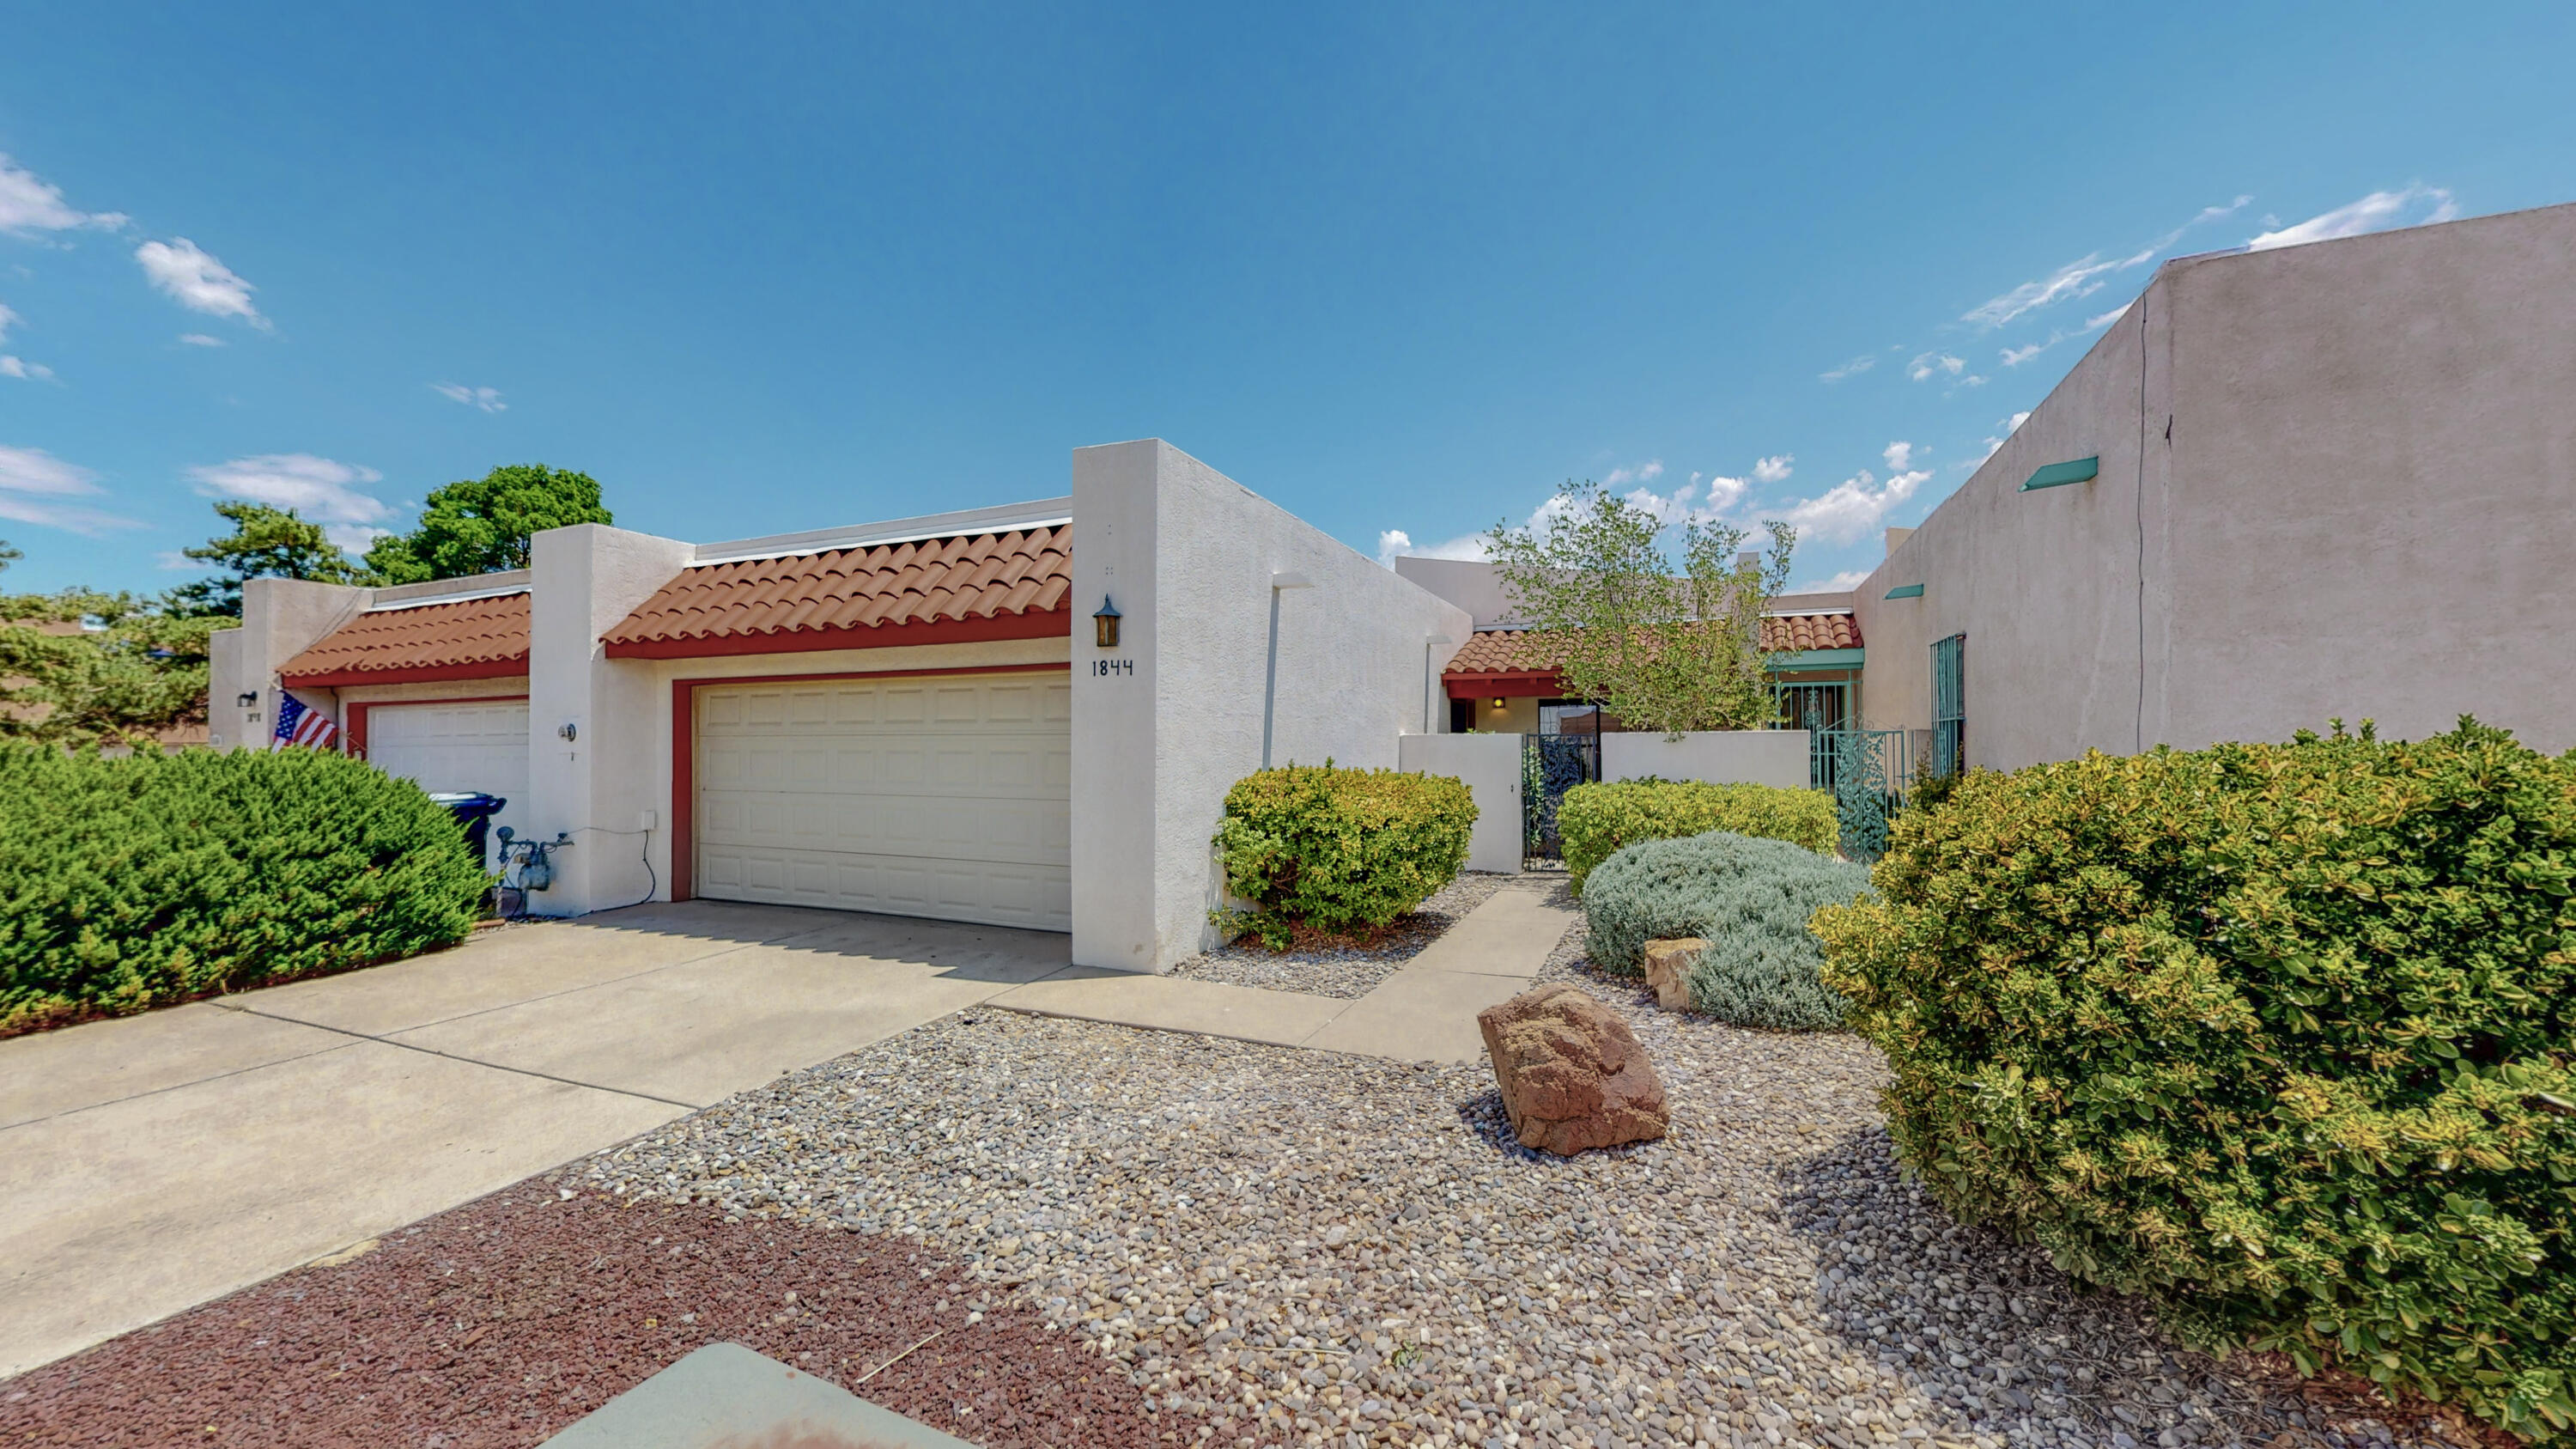 This Cozy, 3 Bdrm Single Level Townhouse w/ 2 Car attached Garage is Minutes from Whole Foods, UNM, Alb Tennis Club, Downtown, Hospitals, UNM Law & Med Schools! Enter the house Through a Private Gated Courtyard. High ceilings w/ Beam Accents, Kiva Fireplace & West Facing Windows give The Great Room an Open, Bright Feeling. Ample Kitchen Counter Space for all your Baking Needs. A Large Pantry & Laundry Room. Refrigerator, Washer & Dryer Stay! The Spacious Master Suite includes a Kiva Fireplace, Built in Book Shelves & Cabinets in the Sitting Room. Double Sinks & Large Walk in Closet Complete the Full Master Bathroom. Xeriscape Front & Backyard allow for Easy Maintenance. Covered Front & Back Patios. Hot Water Baseboard Heat.